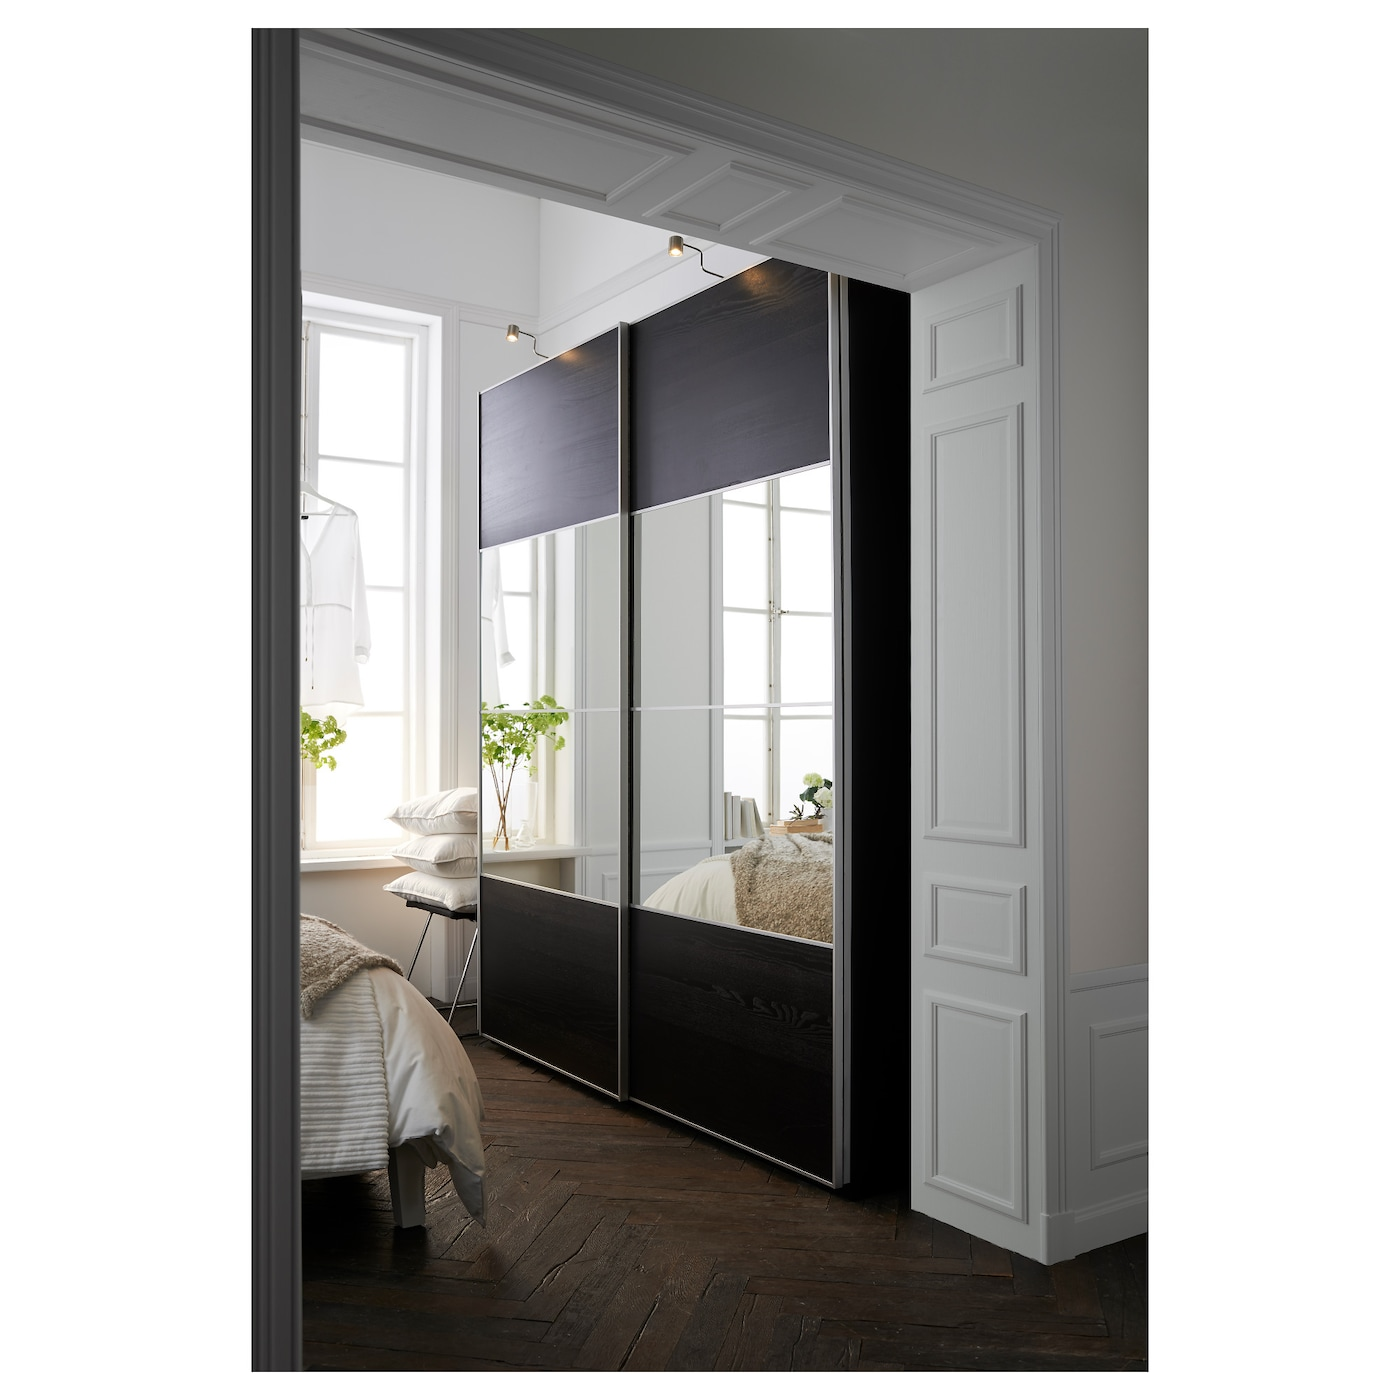 Pax wardrobe black brown auli ilseng 200x66x236 cm ikea for Ikea meuble rangement mural